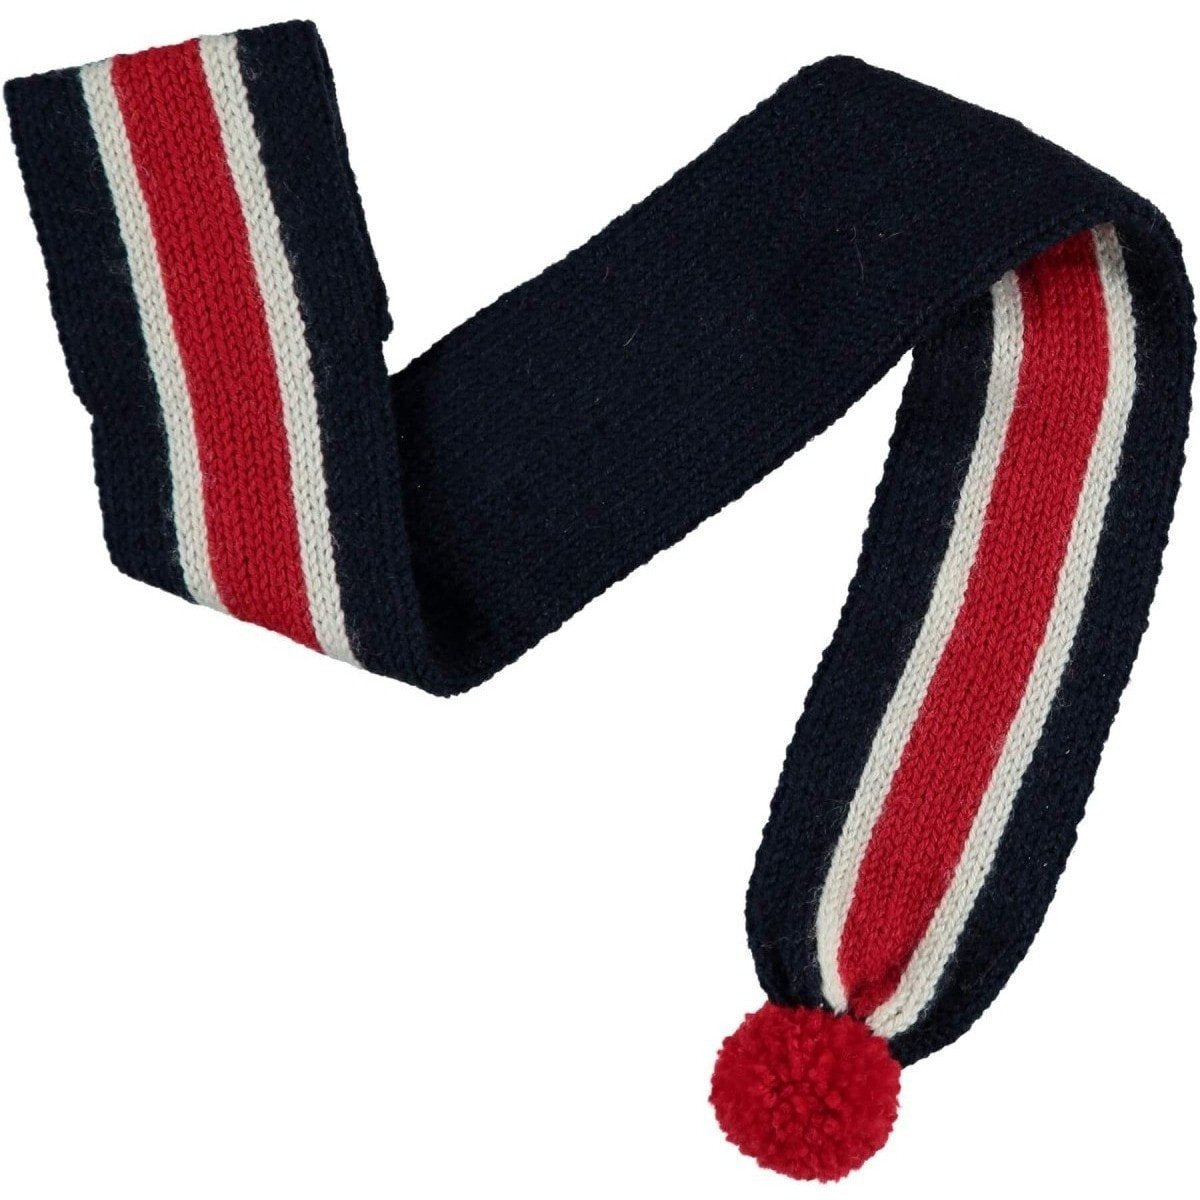 Baker & Bray Dog Apparel Medium Knitted Striped Dog Scarf by Baker & Bray - Navy/Red BB-55-01-06-M PetsOwnUs - Pets Own Us